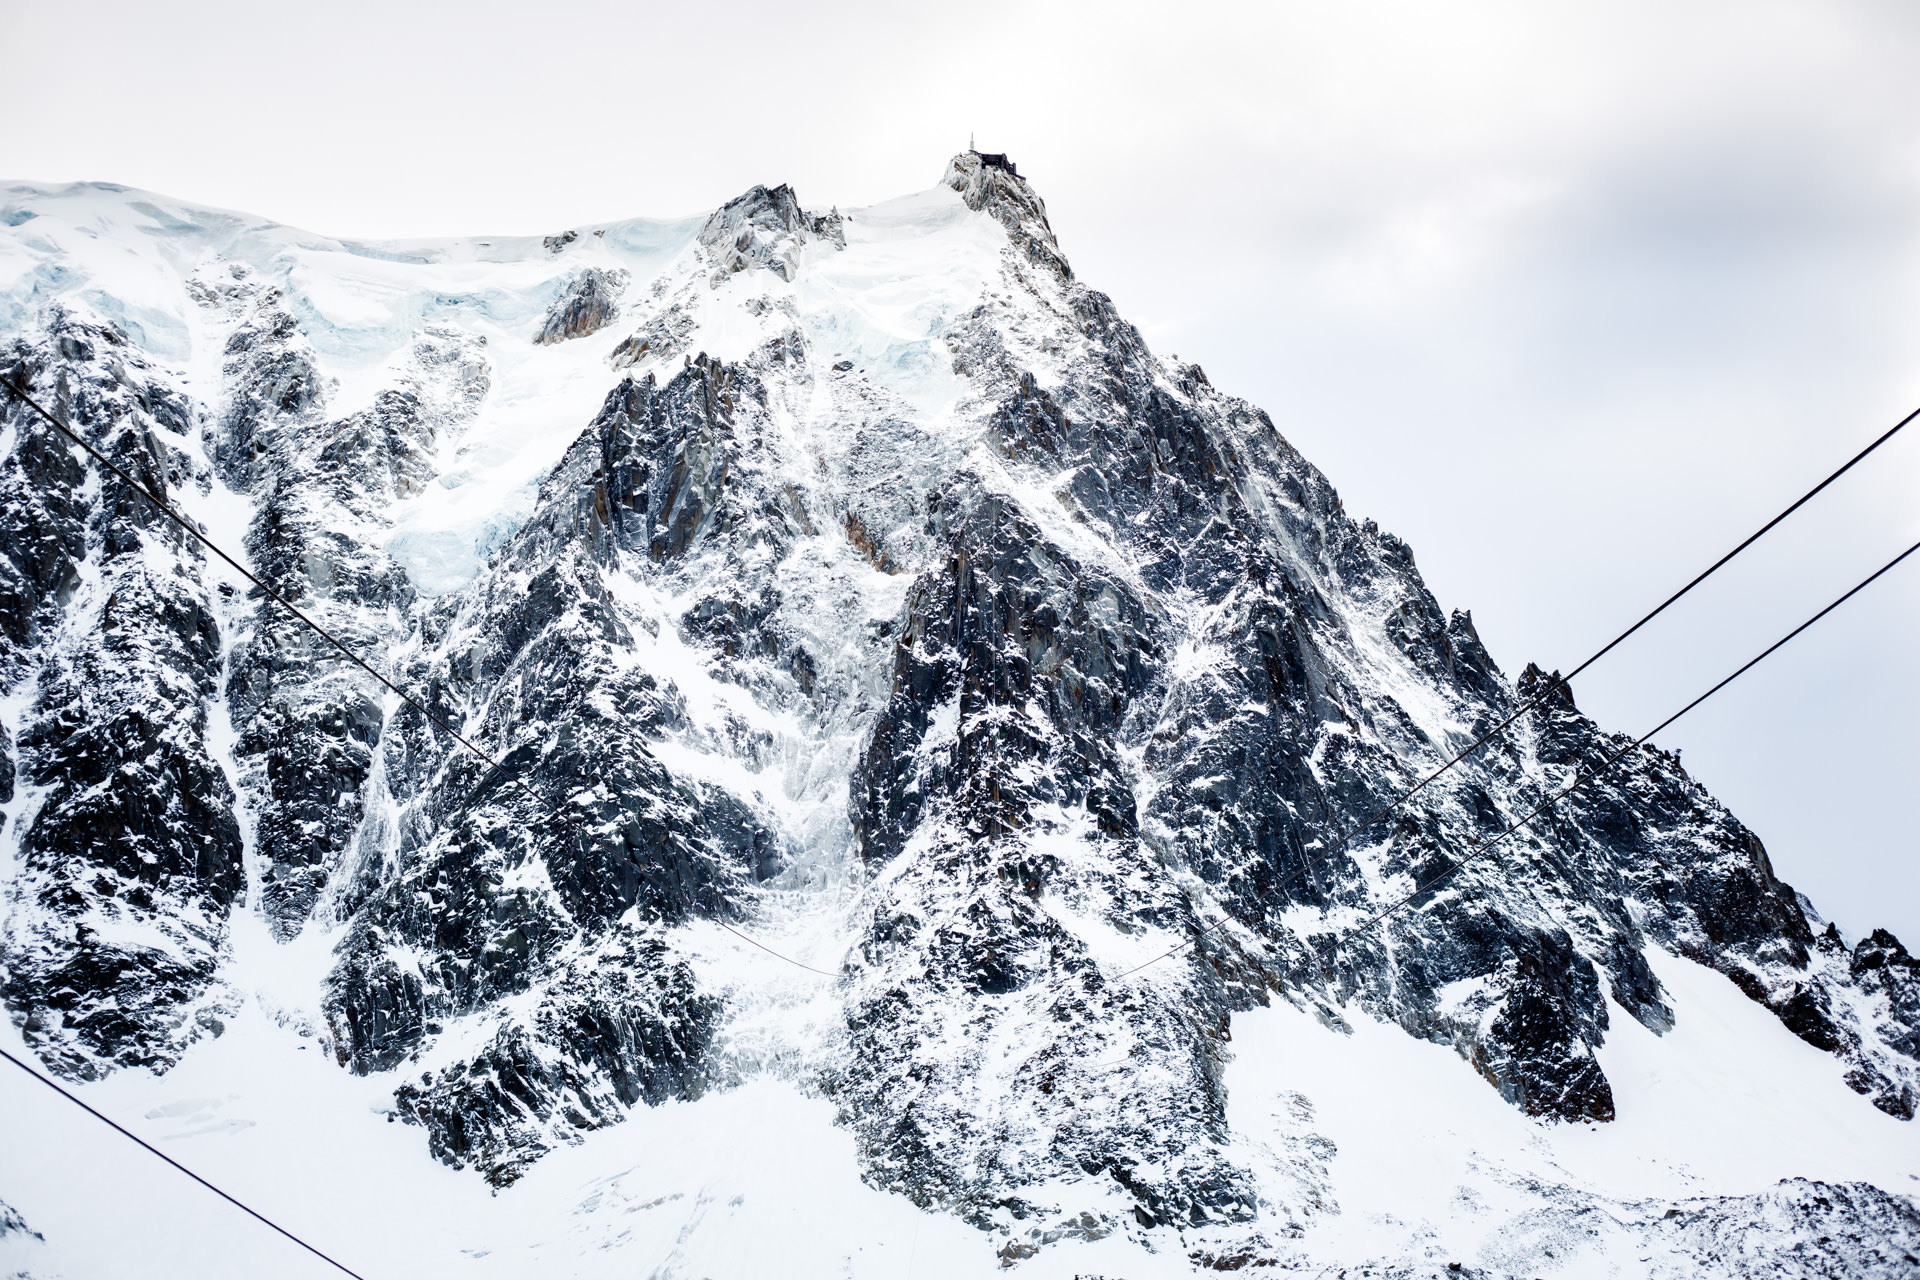 The Aiguille du Midi peak from the halfway point. The cables that guide the cable car dip before rising up to the peak.